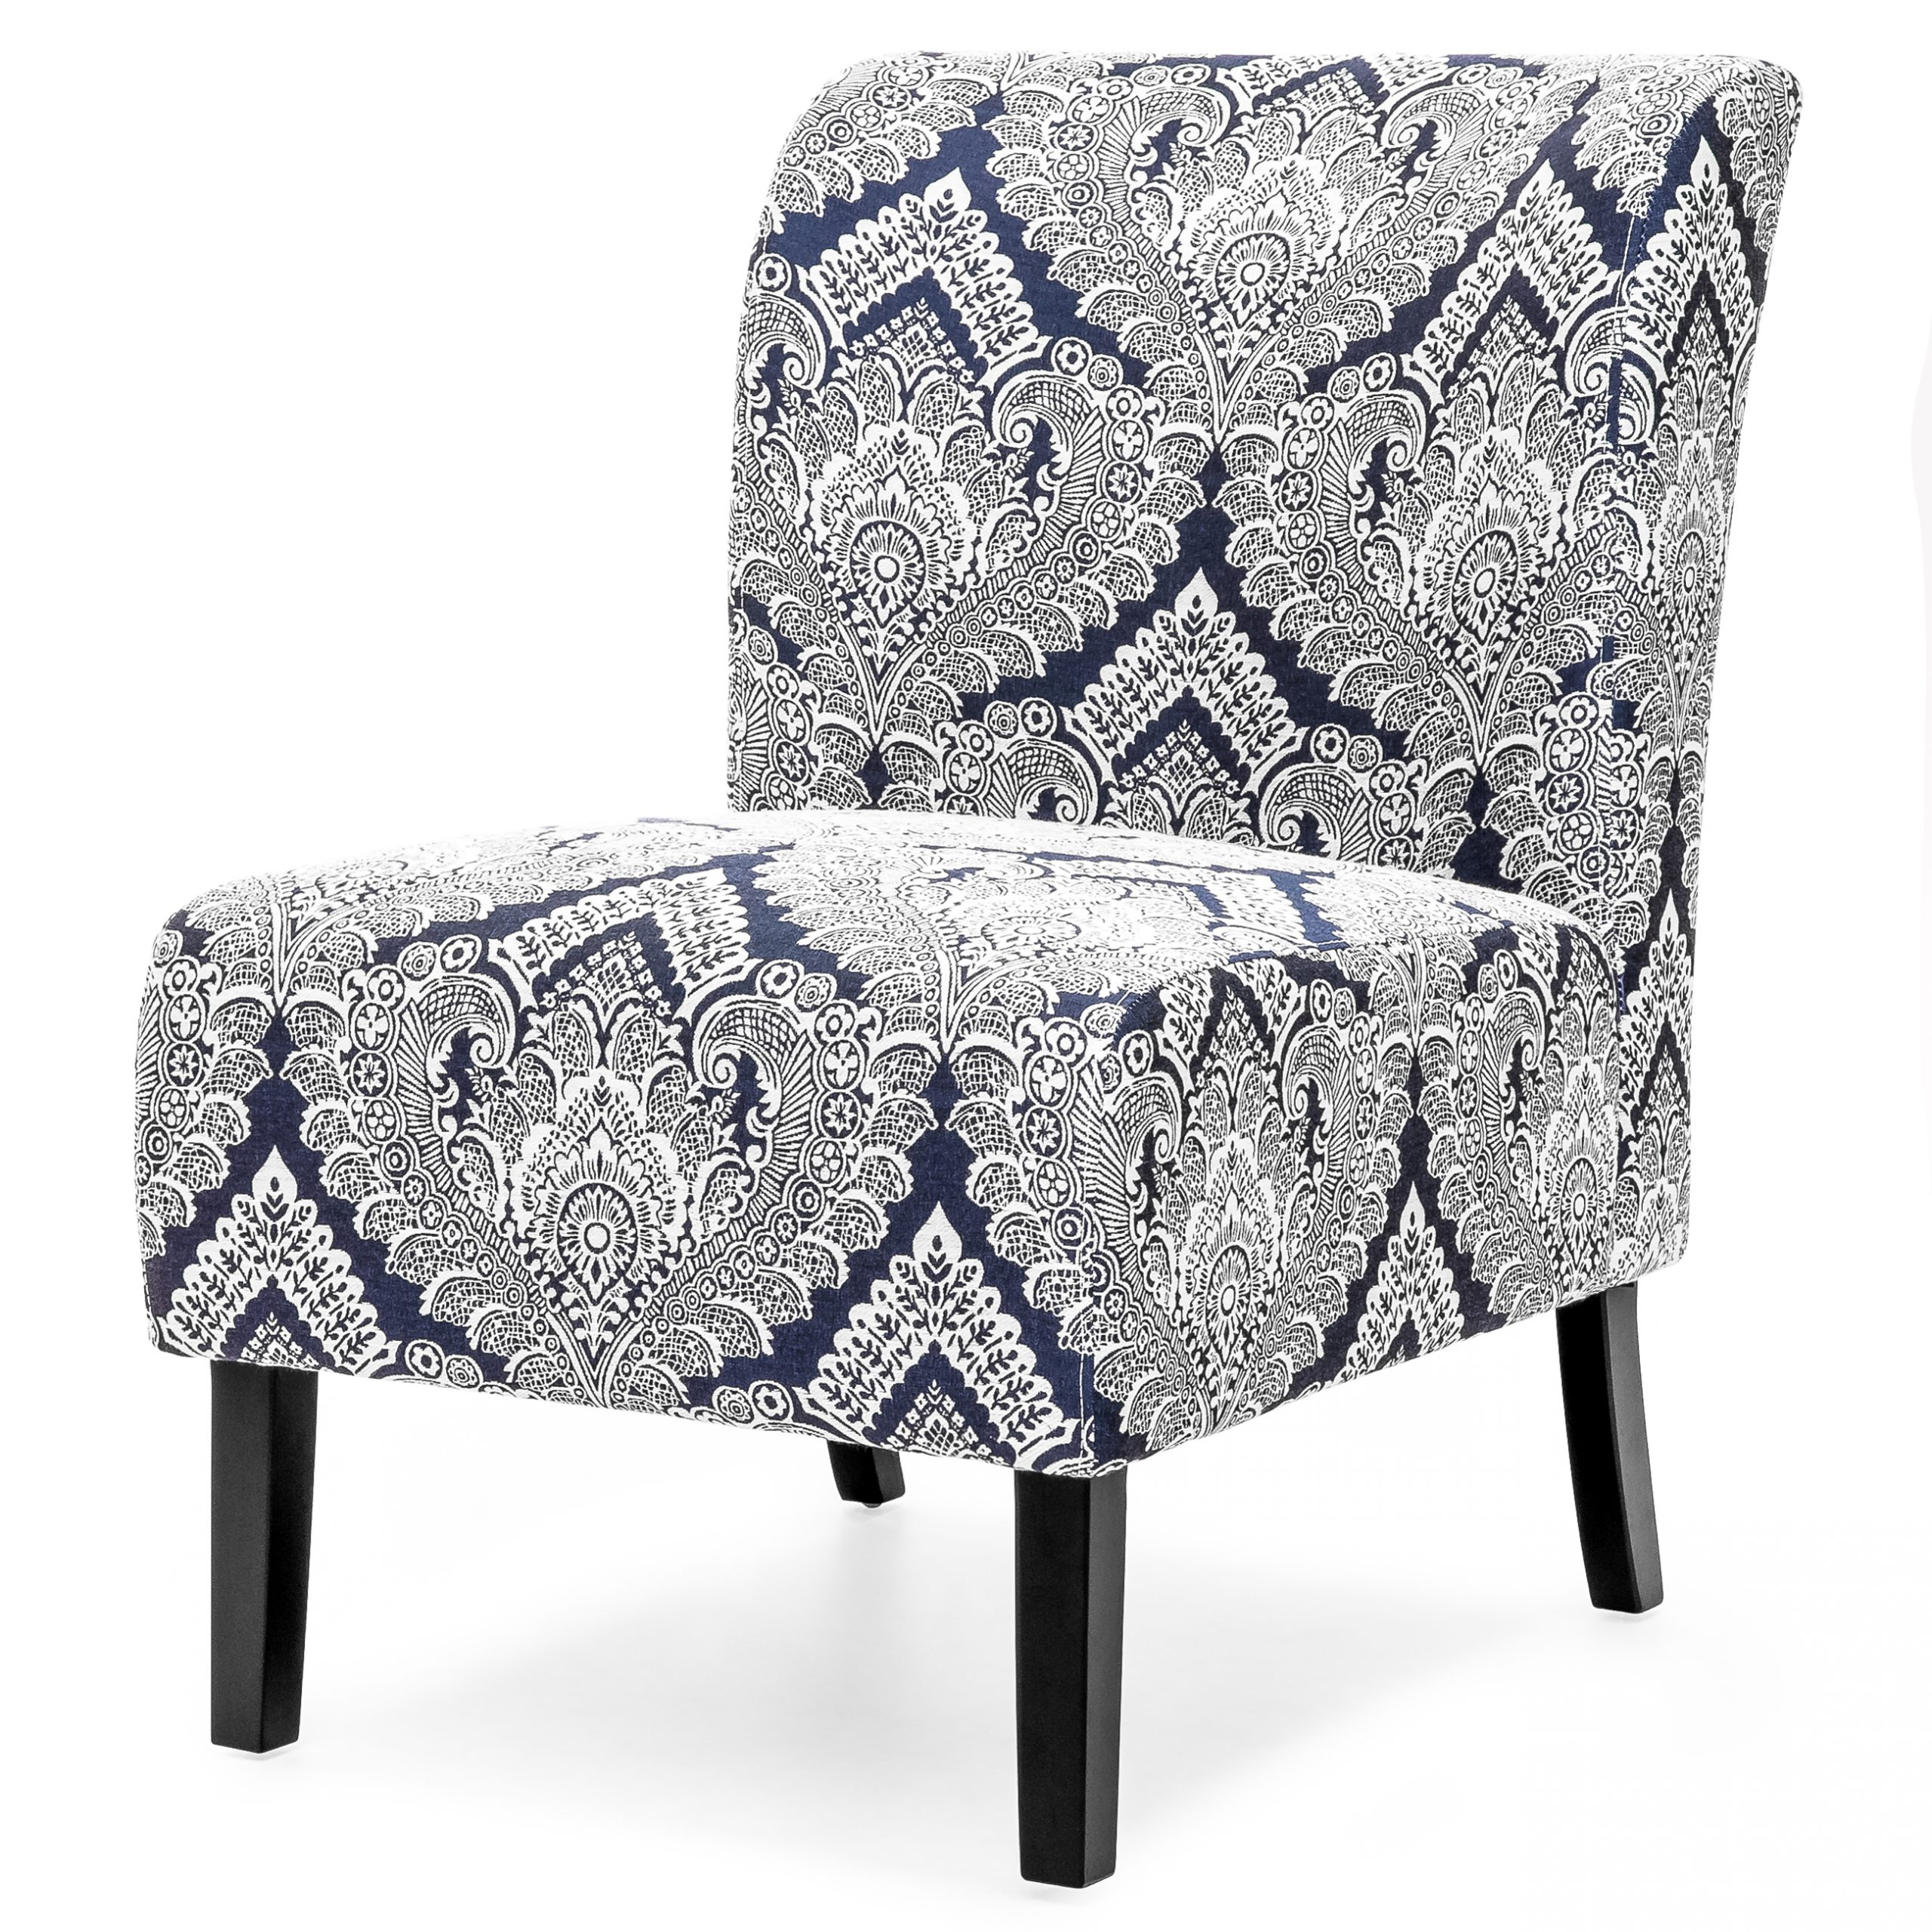 Armless Upholstered Slipper Chairs Throughout Newest Best Choice Products Modern Contemporary Upholstered Armless Accent Chair (blue/white) – Walmart (View 12 of 20)